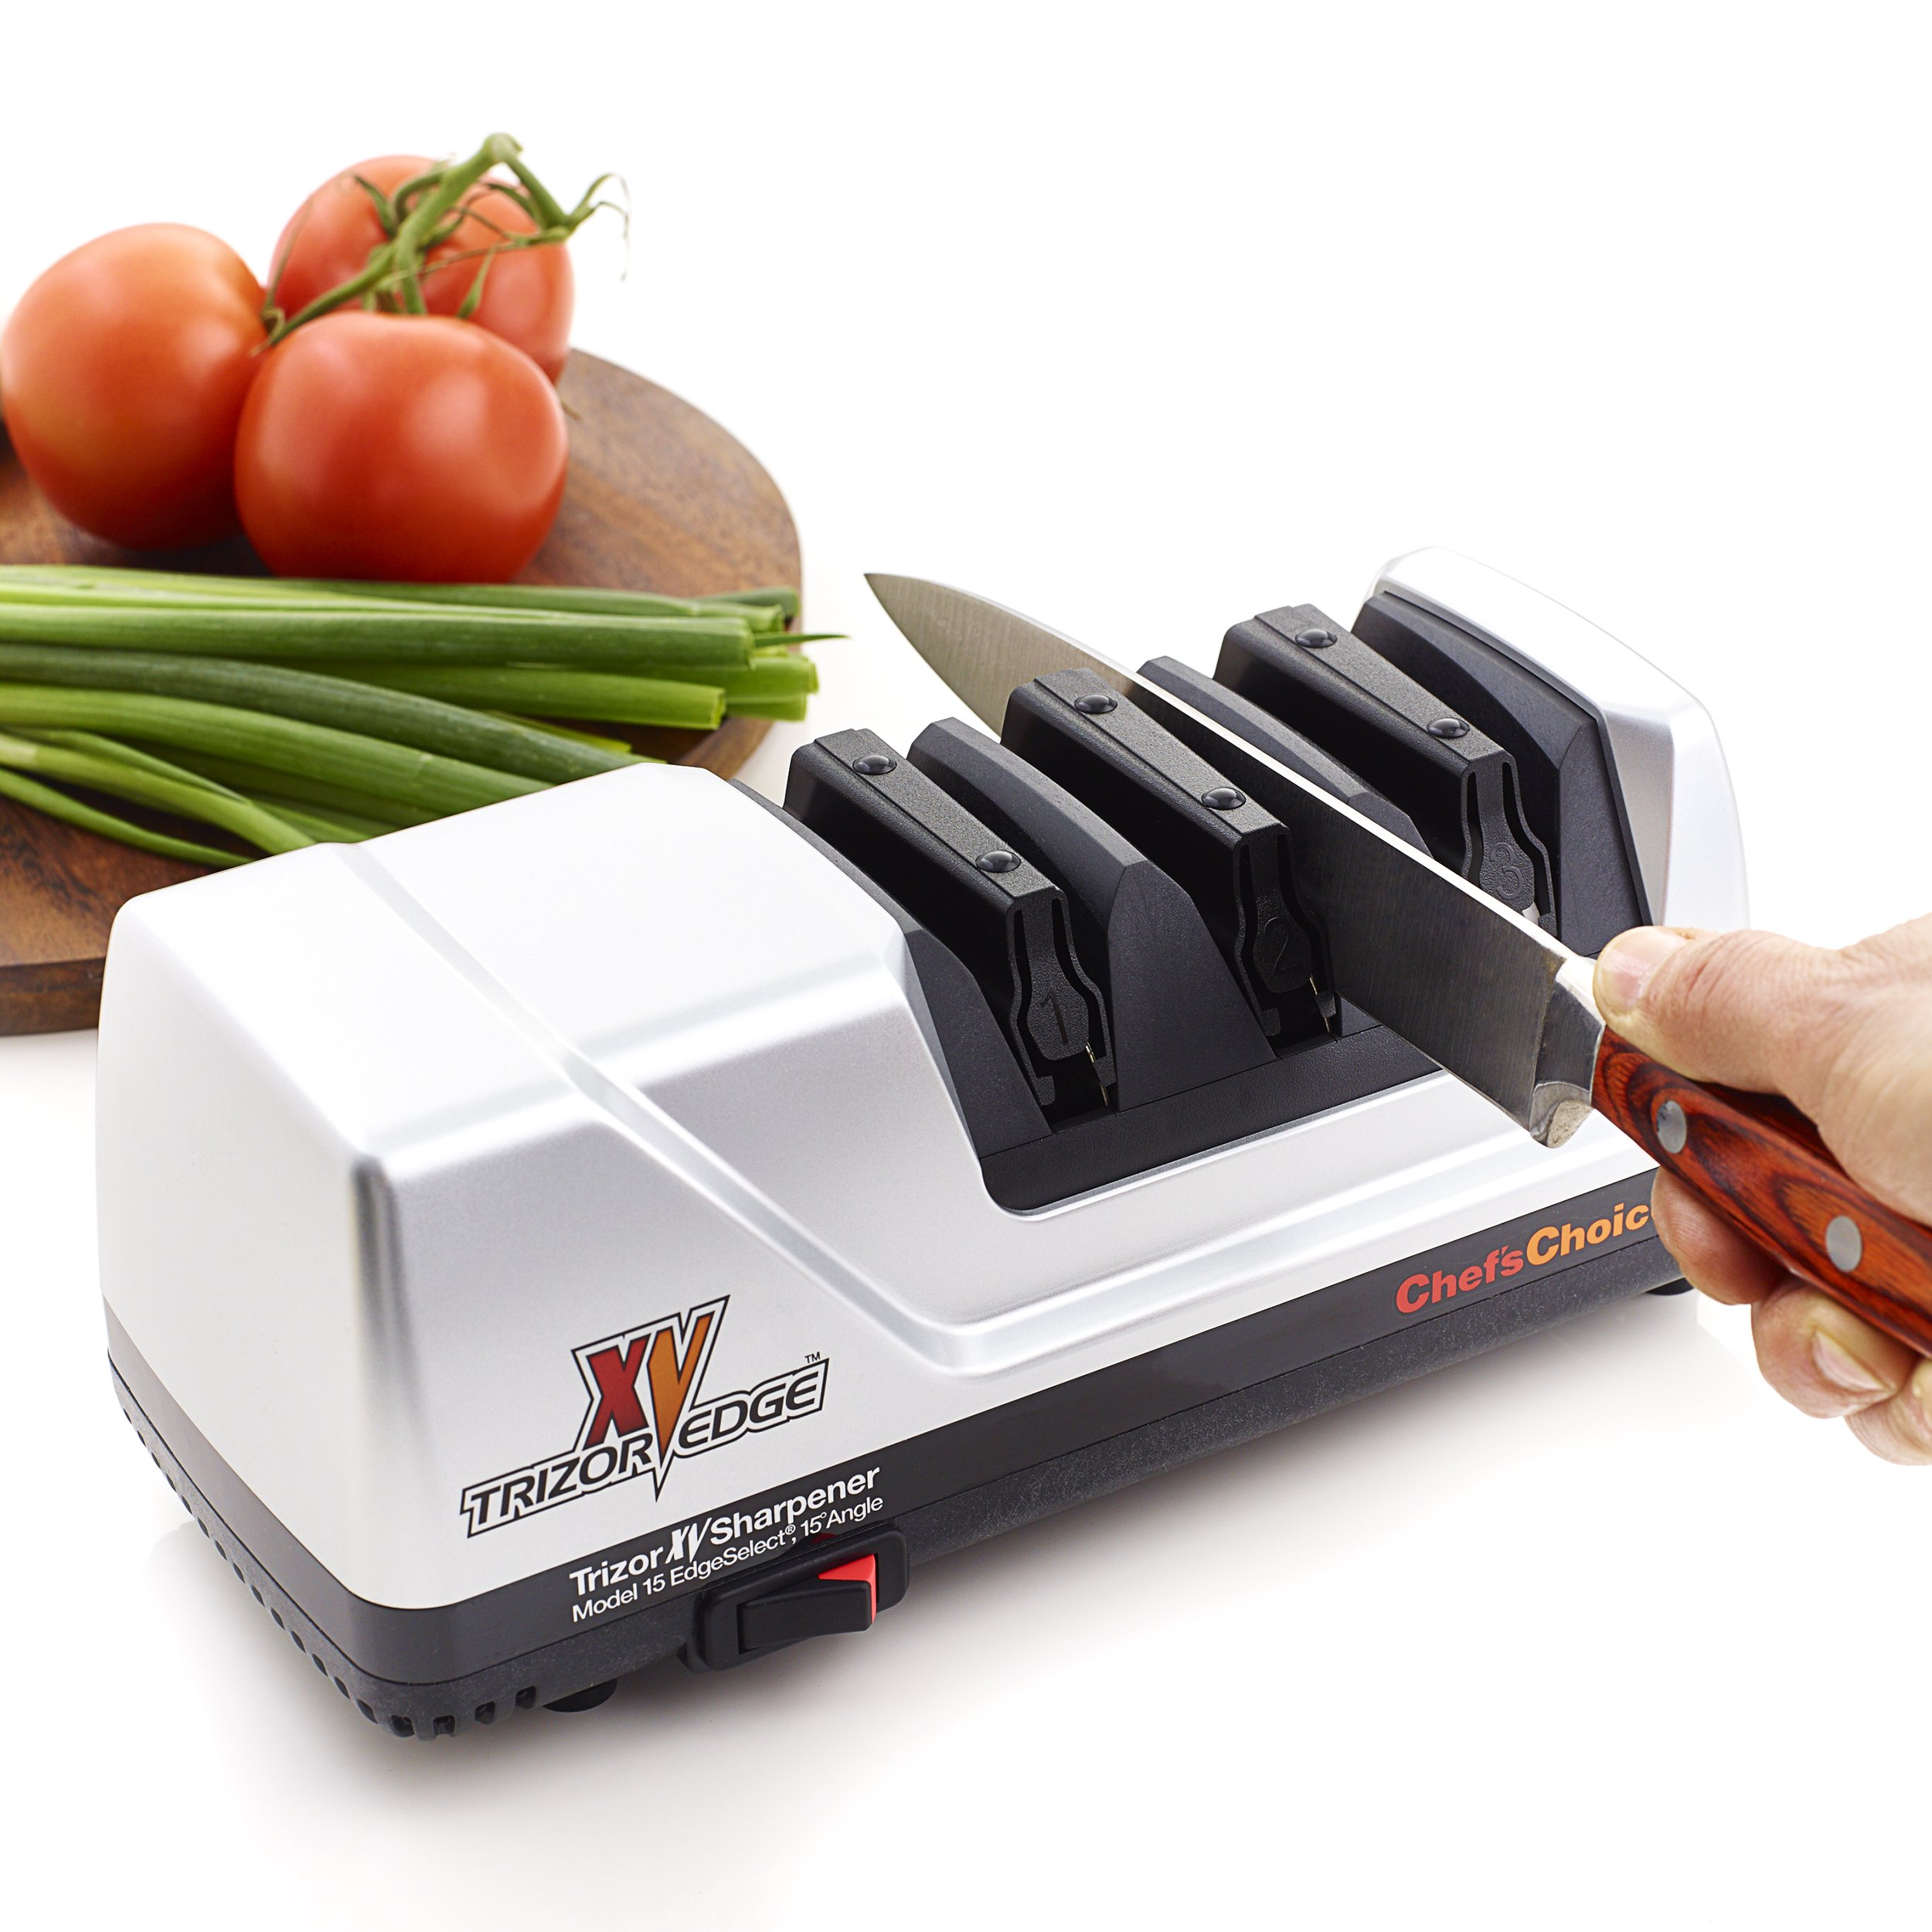 wirecutter kitchen s cooks chefsknives for fullres new most the chefs reviews knife a sharpener chef by best